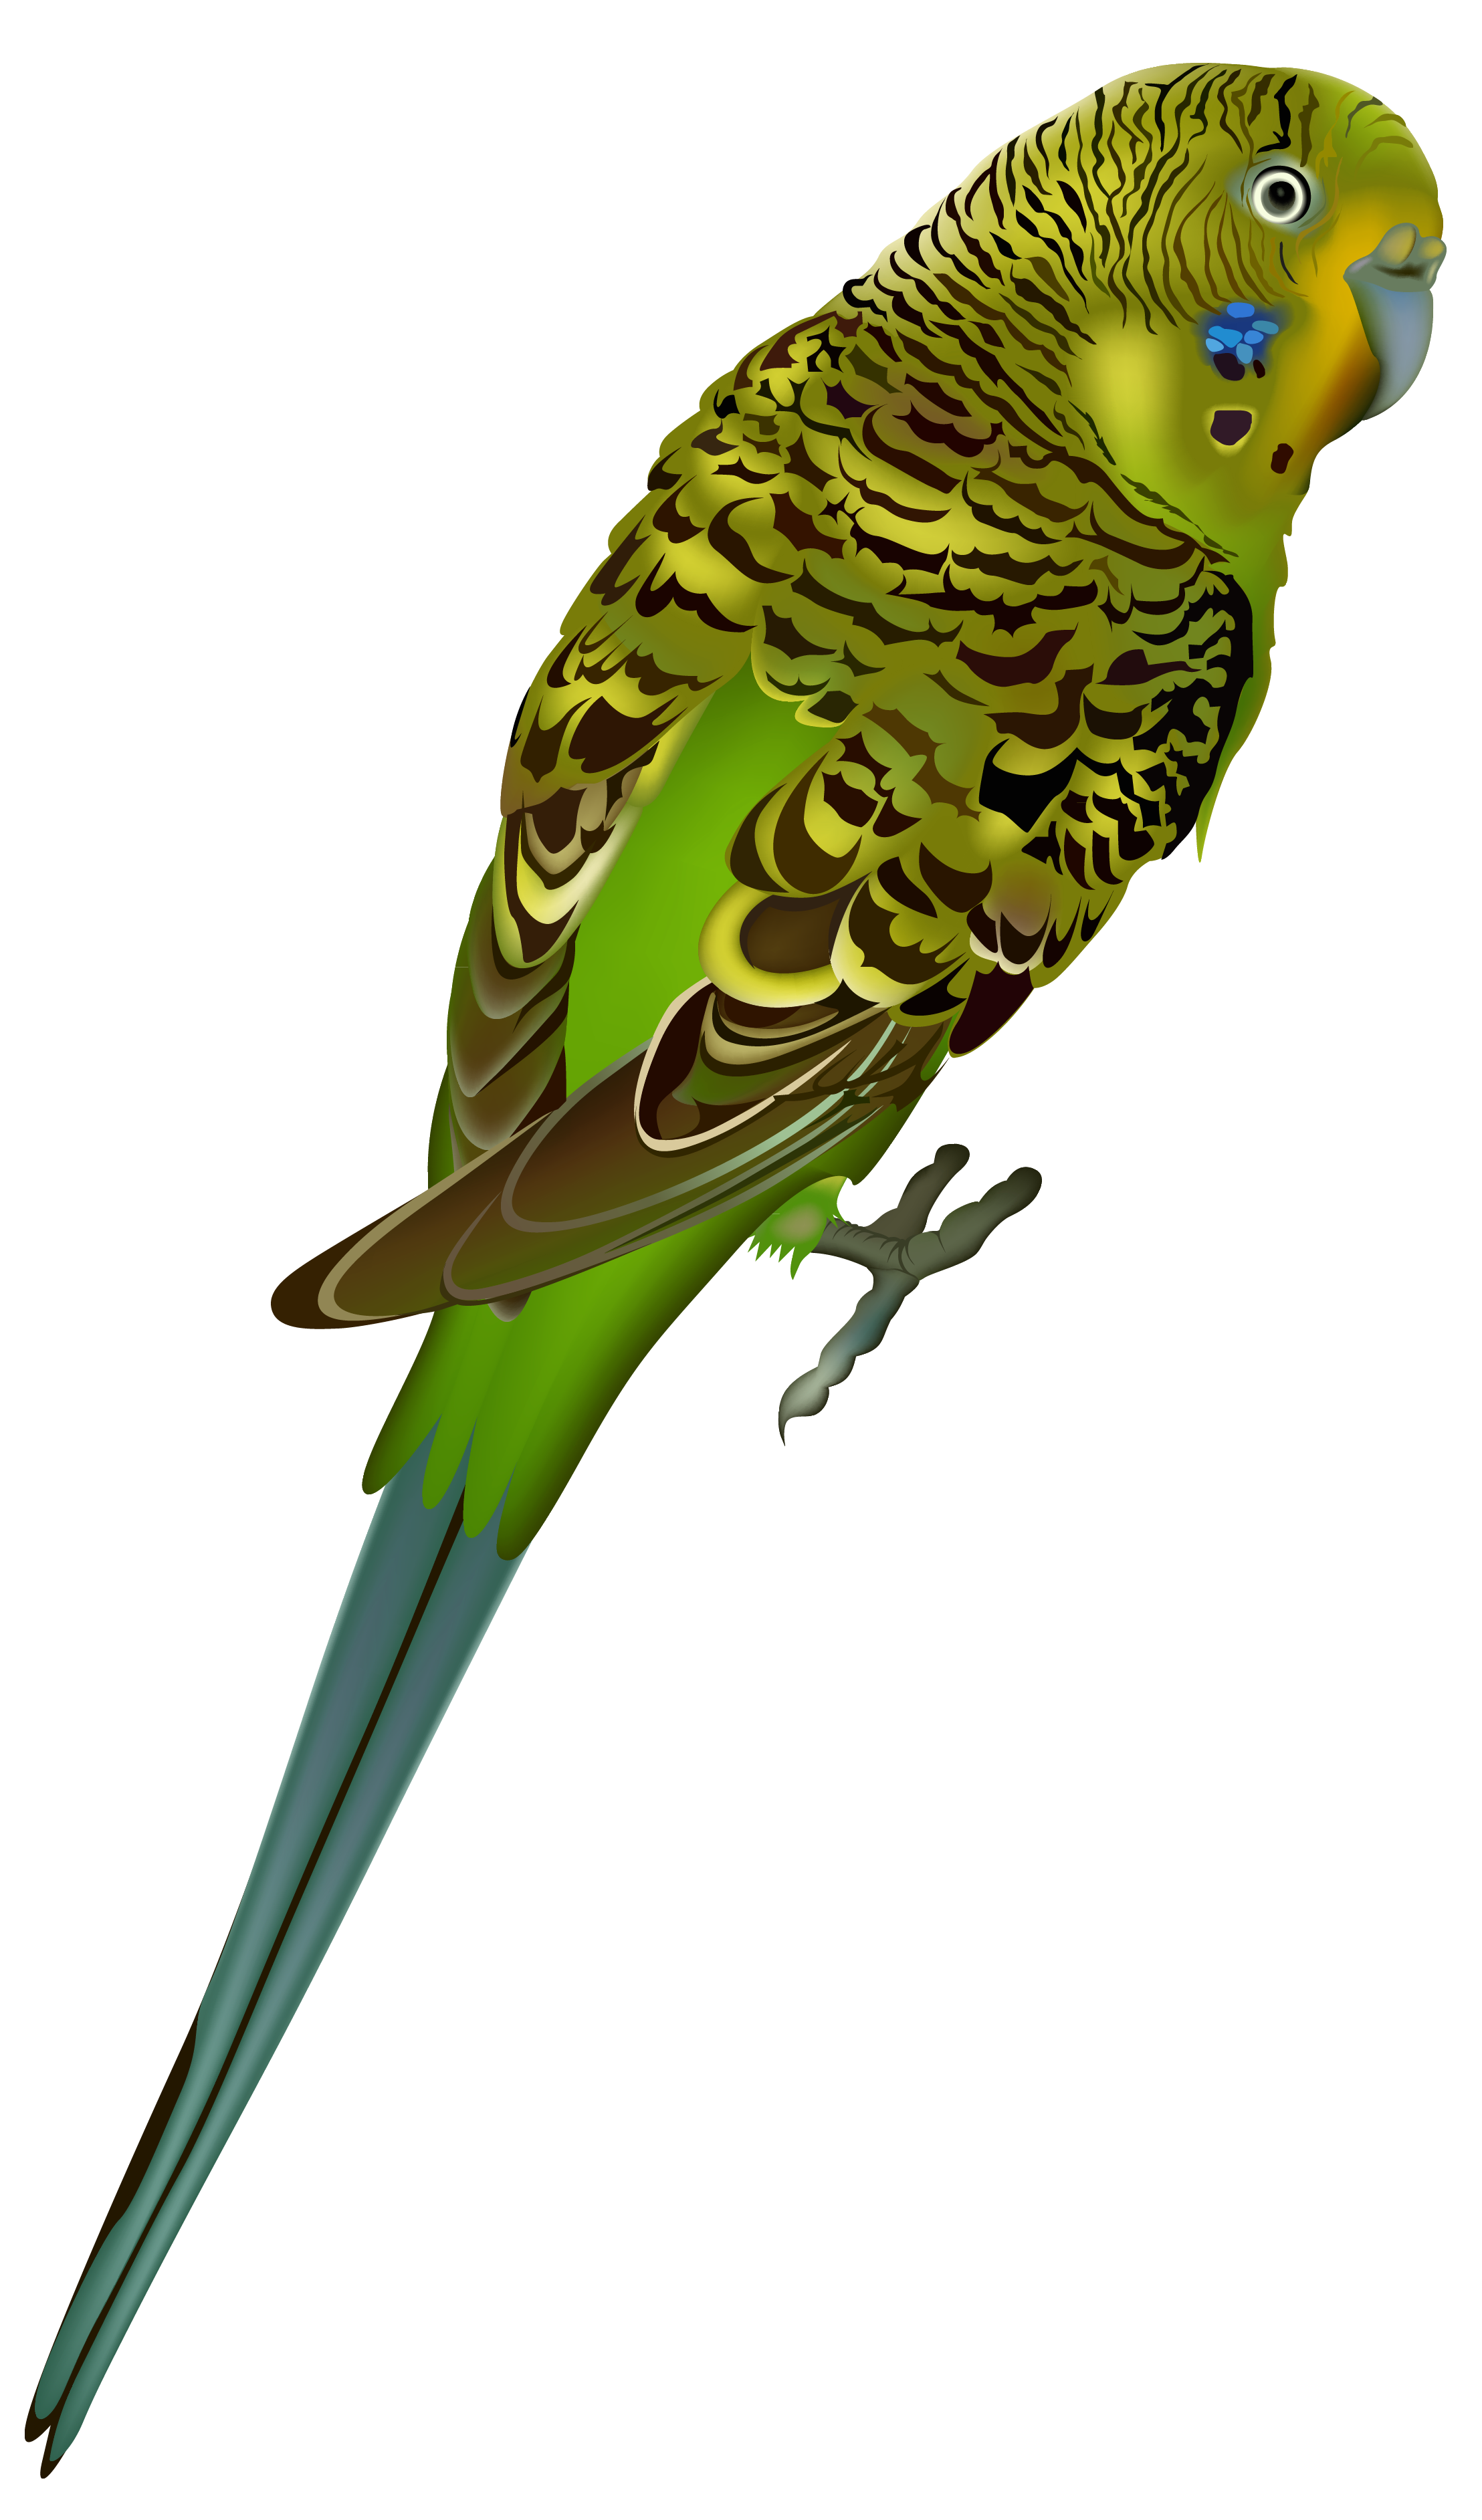 Bird clip art transparent background. Budgie png clipart image